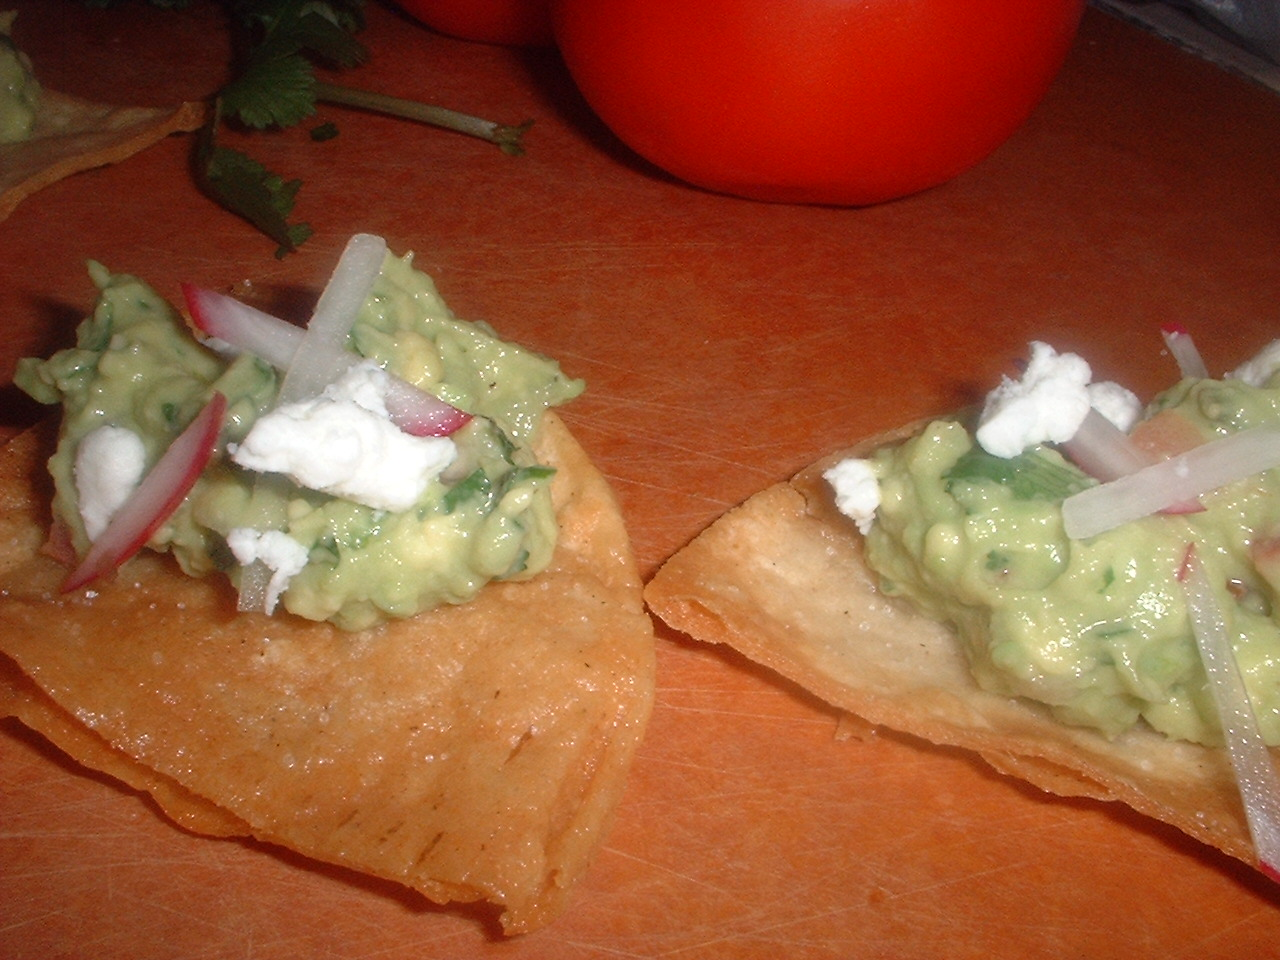 ... Guacamole with Roasted Chile, Cumin and Feta & Homemade Tortilla Chips